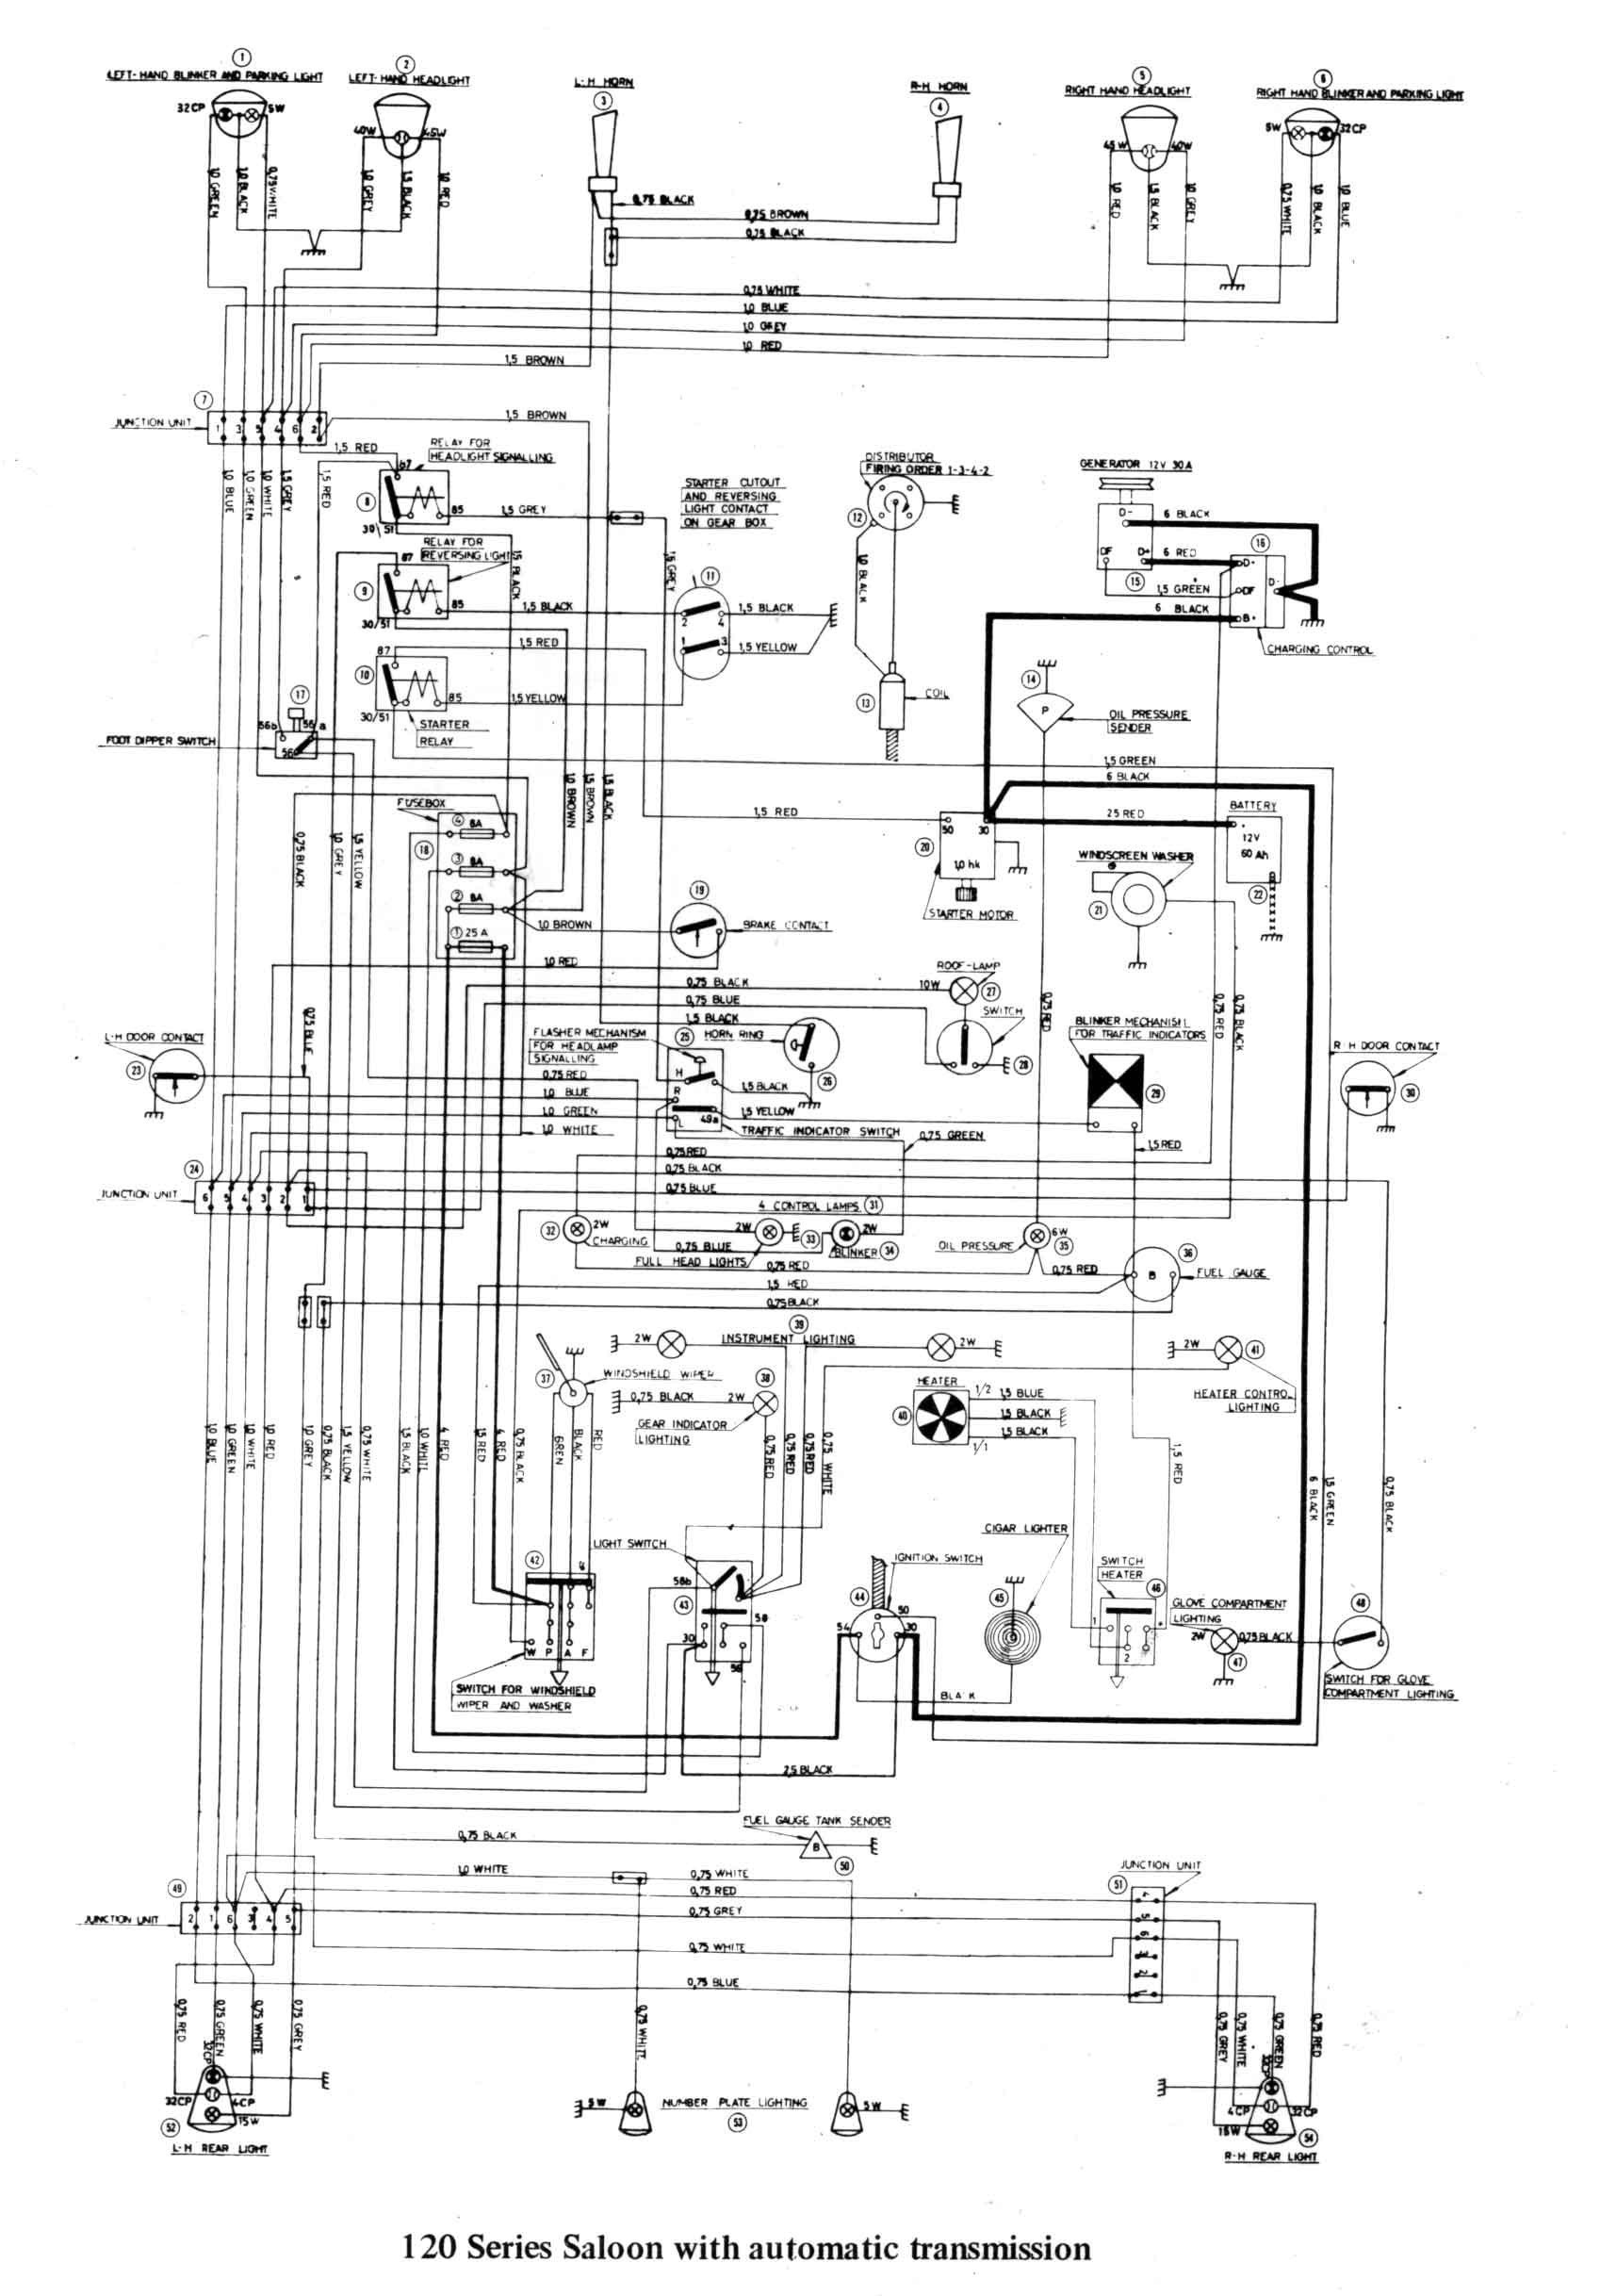 Electrical Connection Diagram Best Electrical Wiring Diagram Lovely Sw Em Od Retrofitting A Vintage